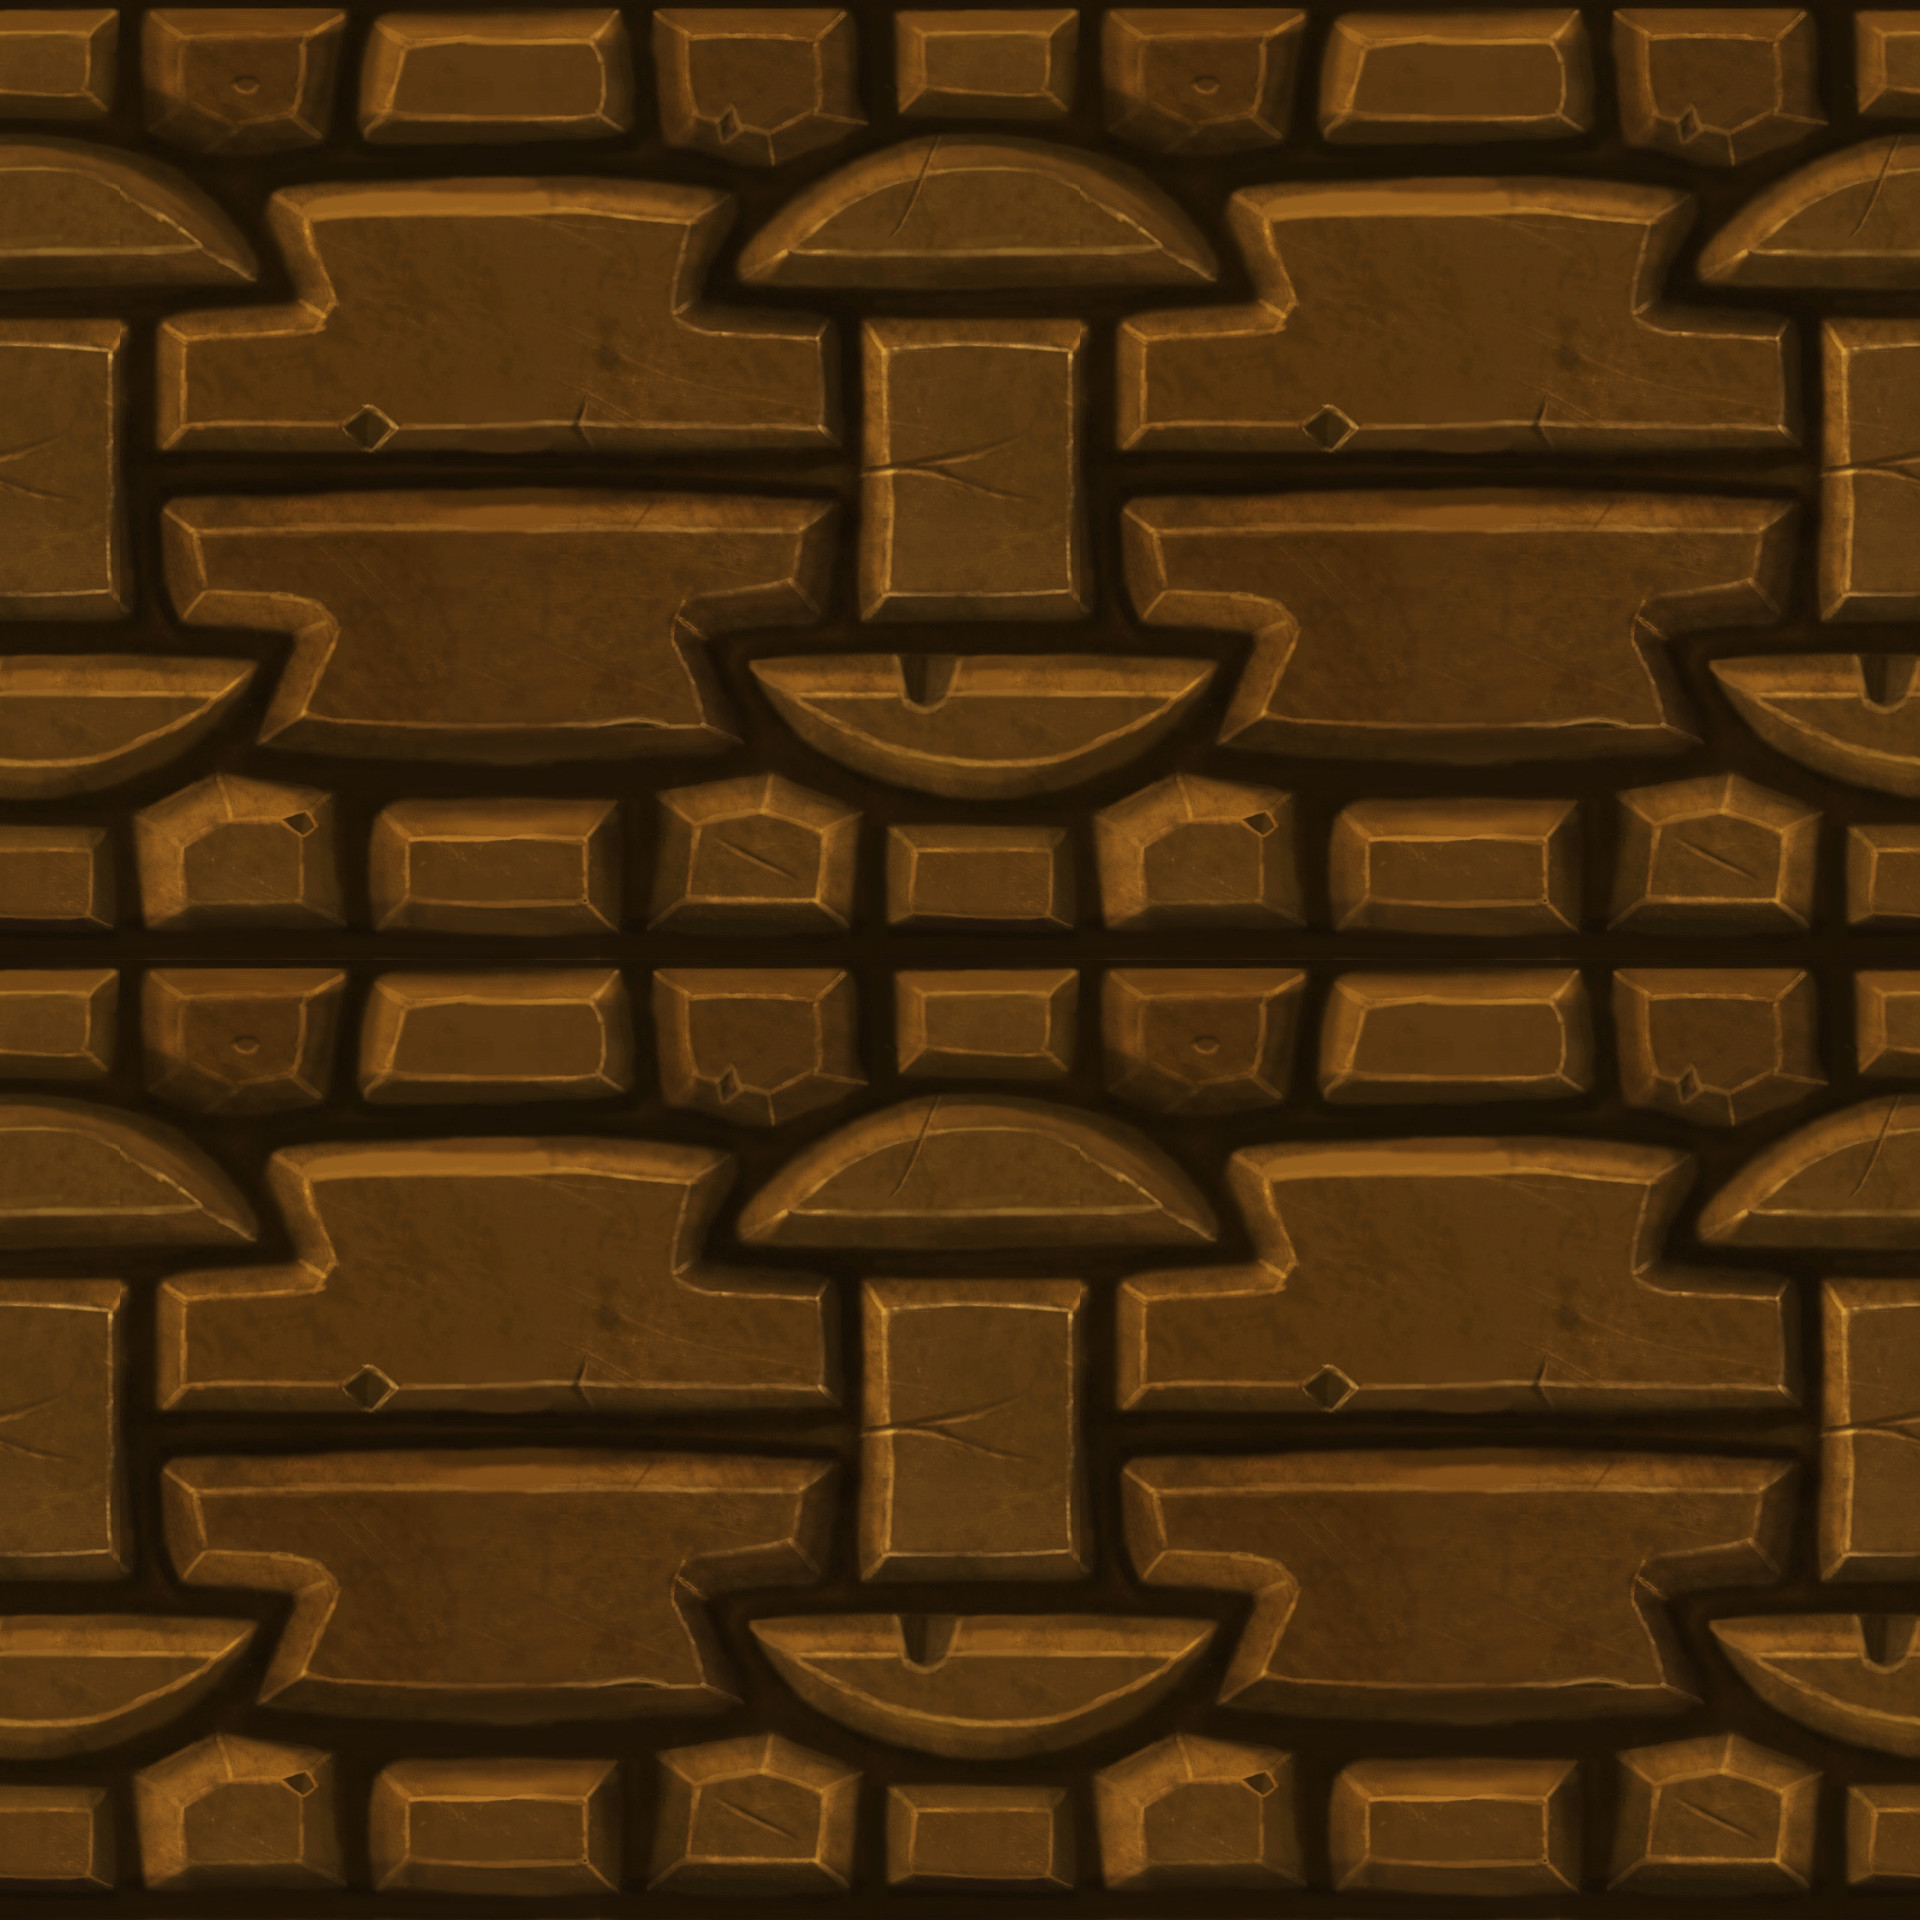 Michael jake carter stone temple tile tileable mage